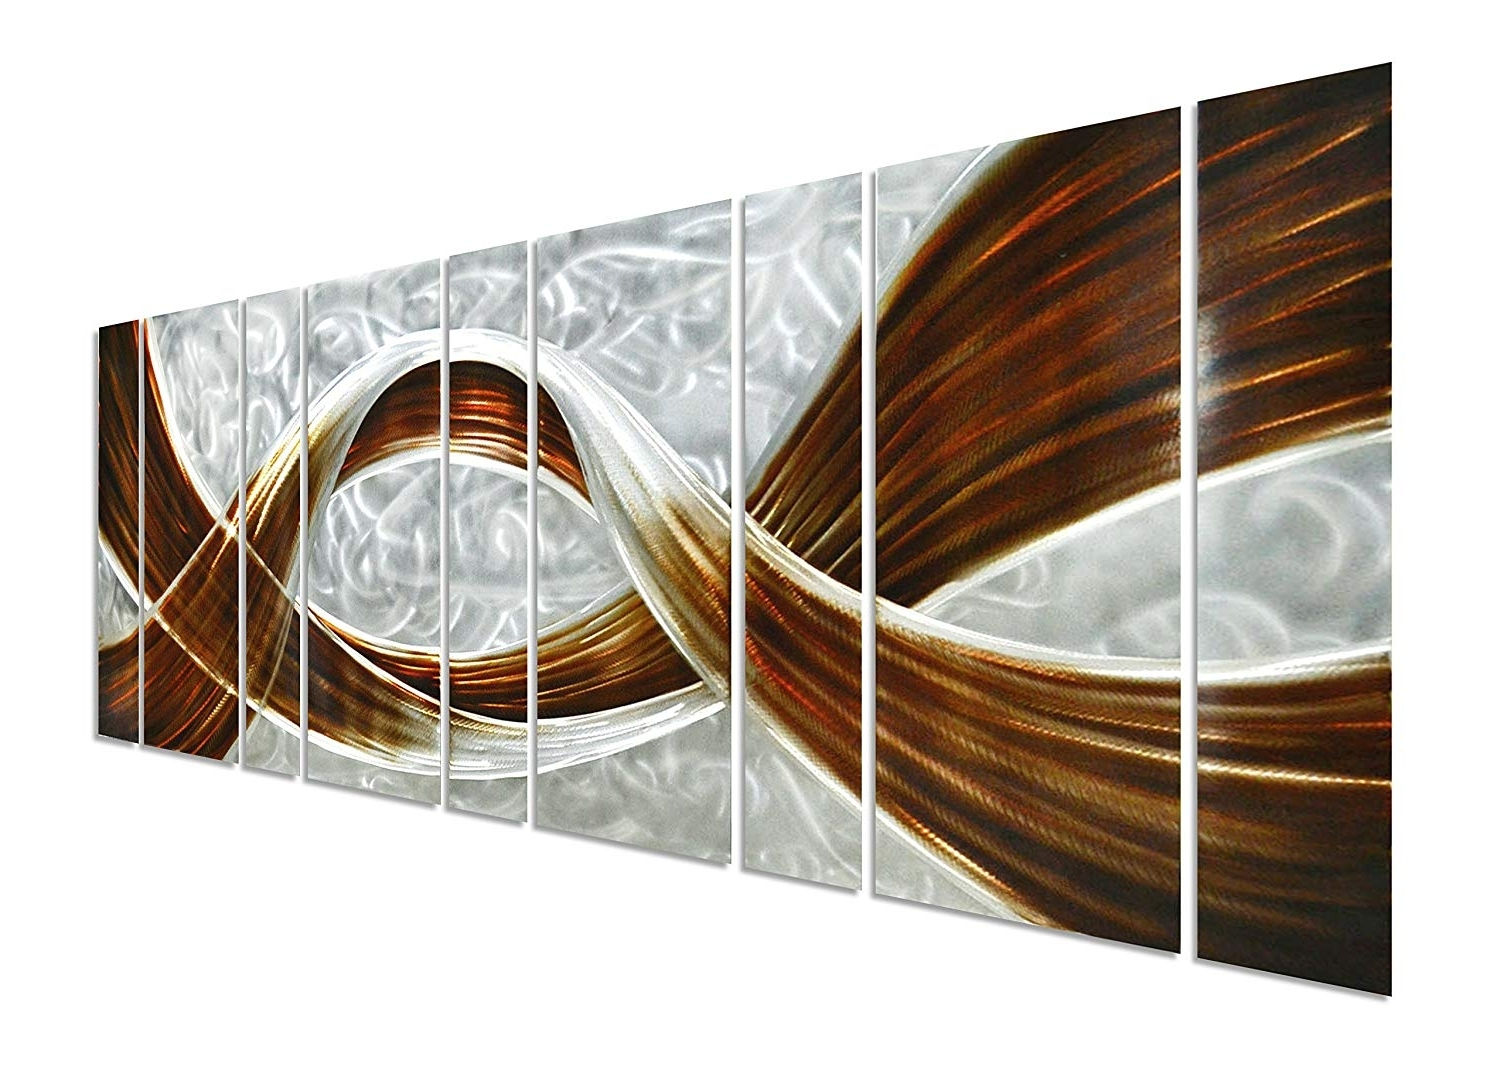 Large Metal Wall Art Pertaining To Most Recent Amazon: Pure Art Caramel Desire Metal Wall Art, Giant Scale (View 9 of 15)